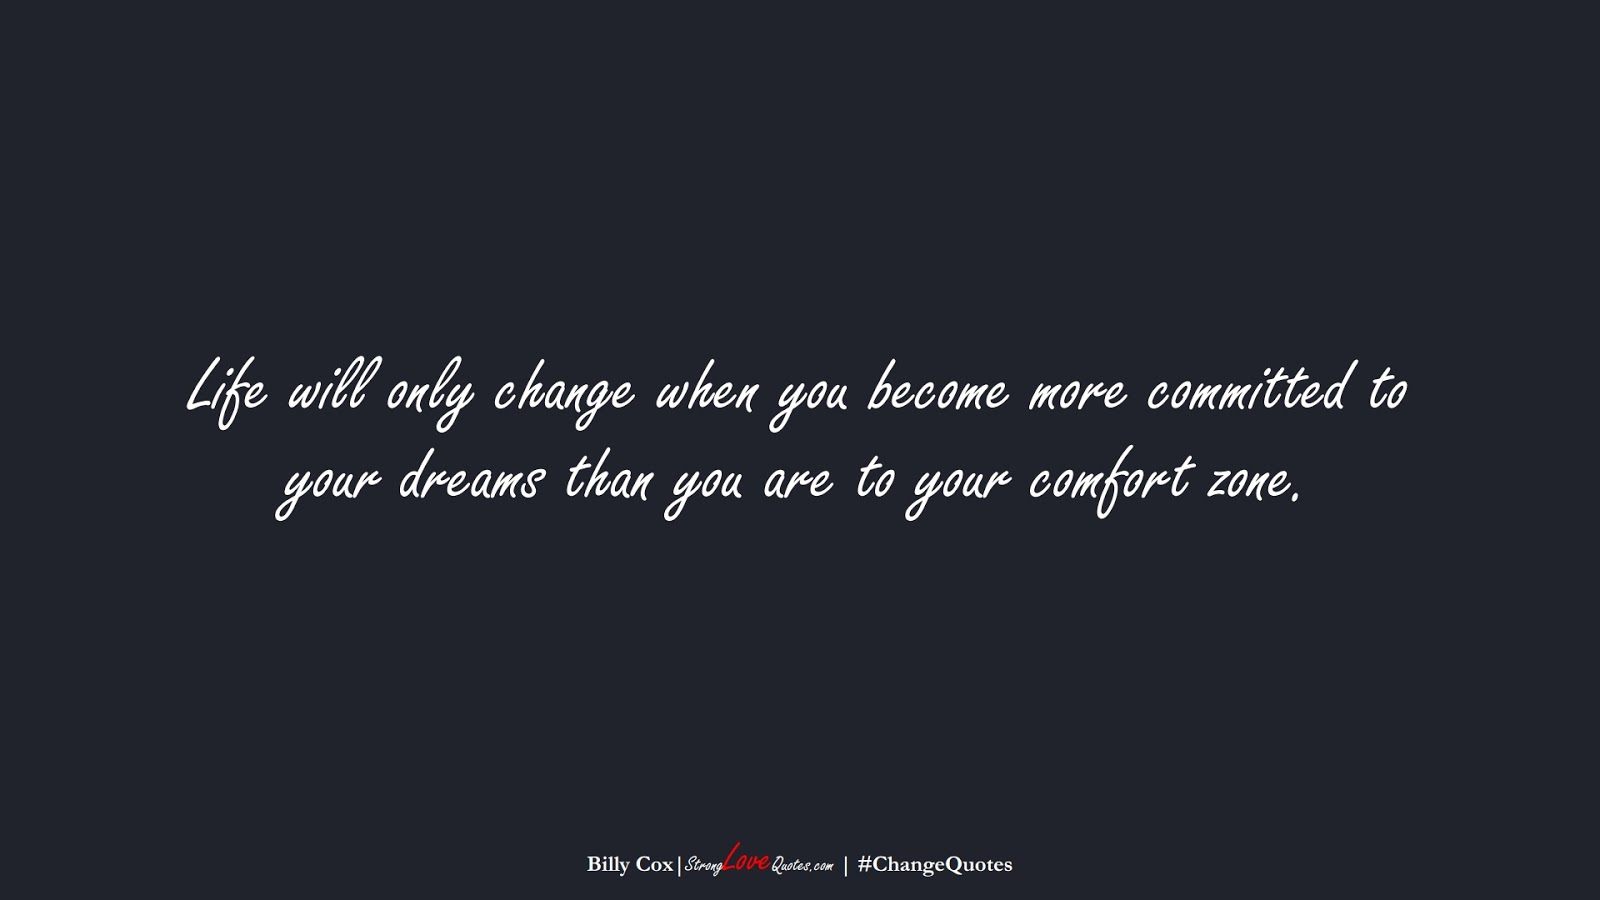 Life will only change when you become more committed to your dreams than you are to your comfort zone. (Billy Cox);  #ChangeQuotes